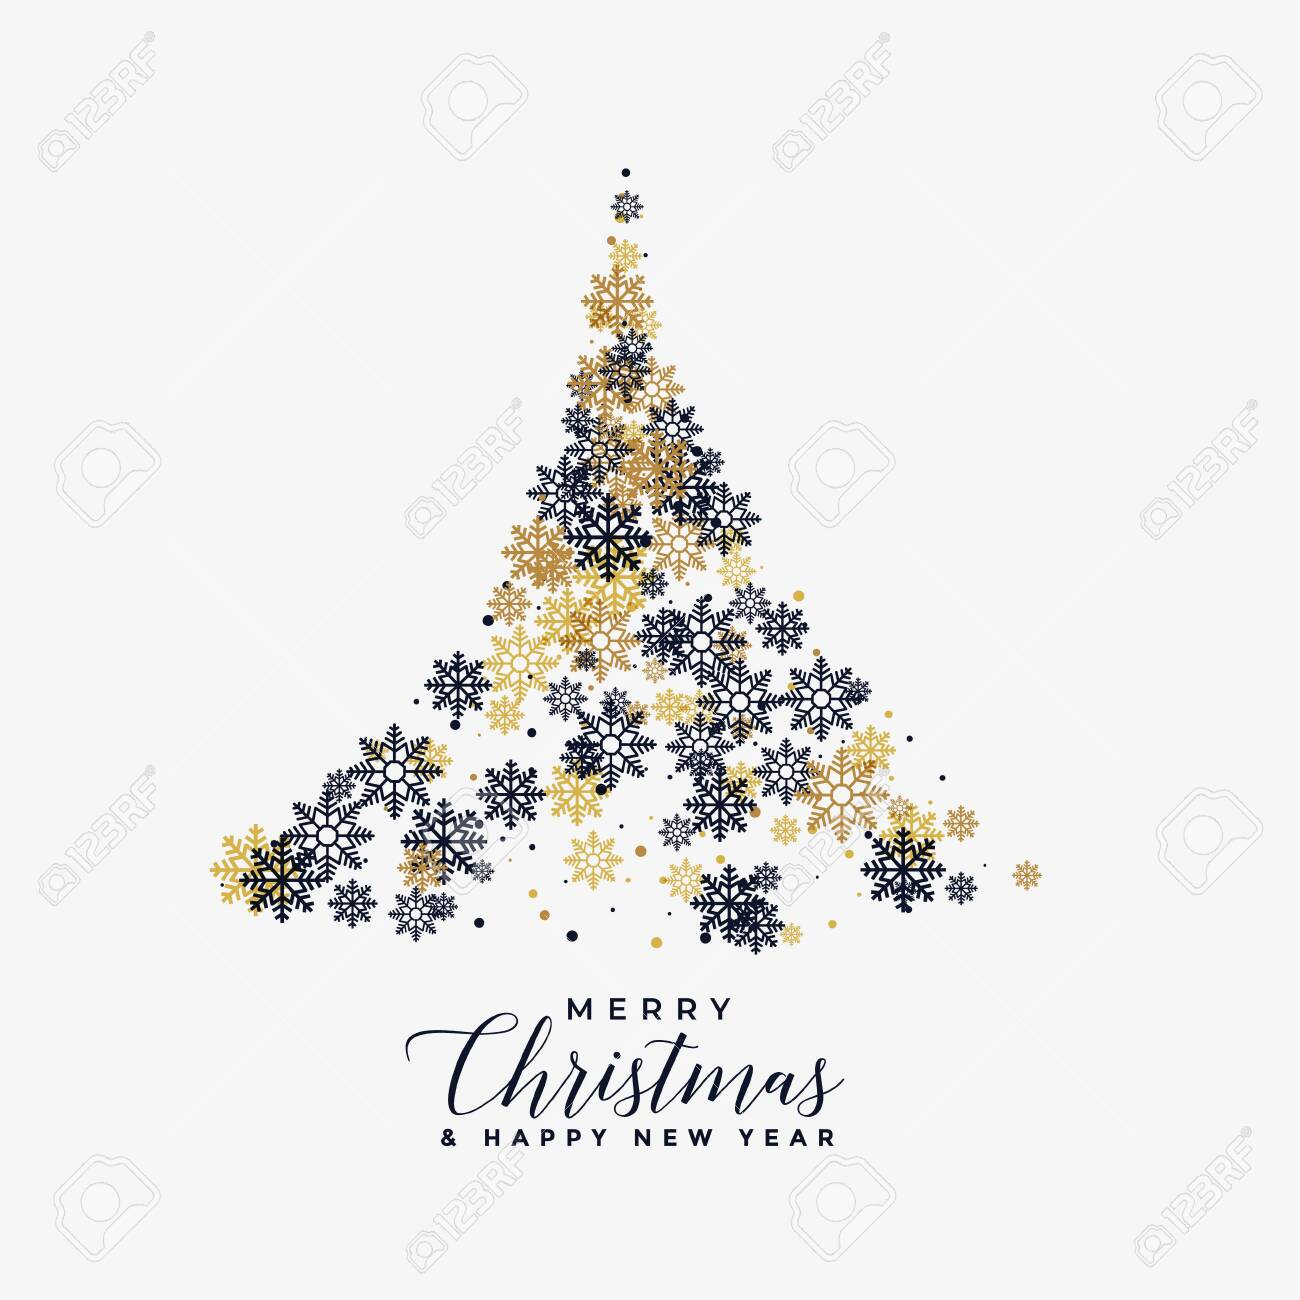 christmas tree made with snowflakes background - 150207211